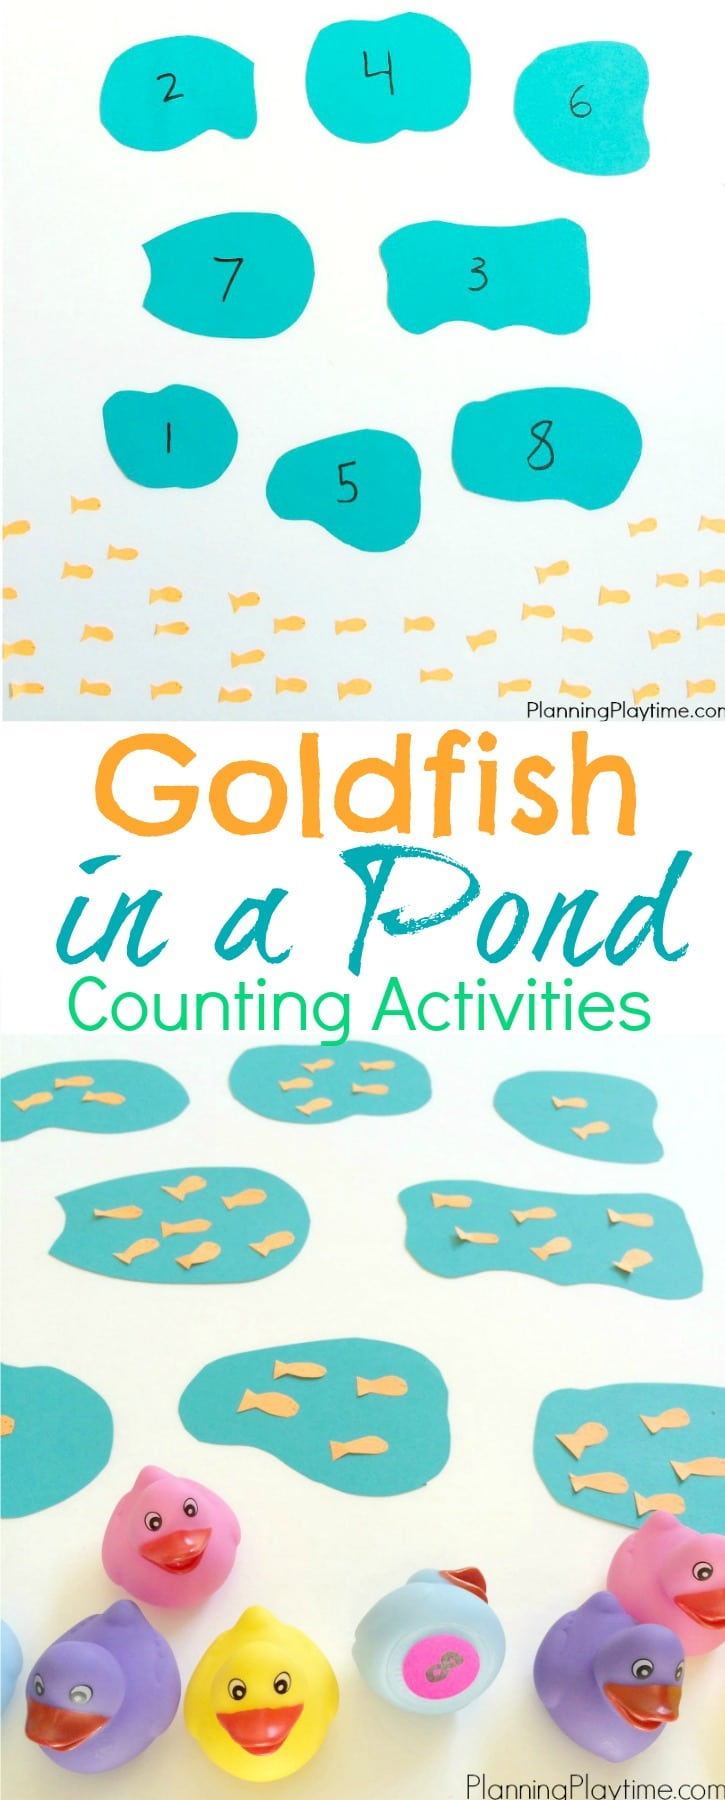 Goldfish Counting Activities